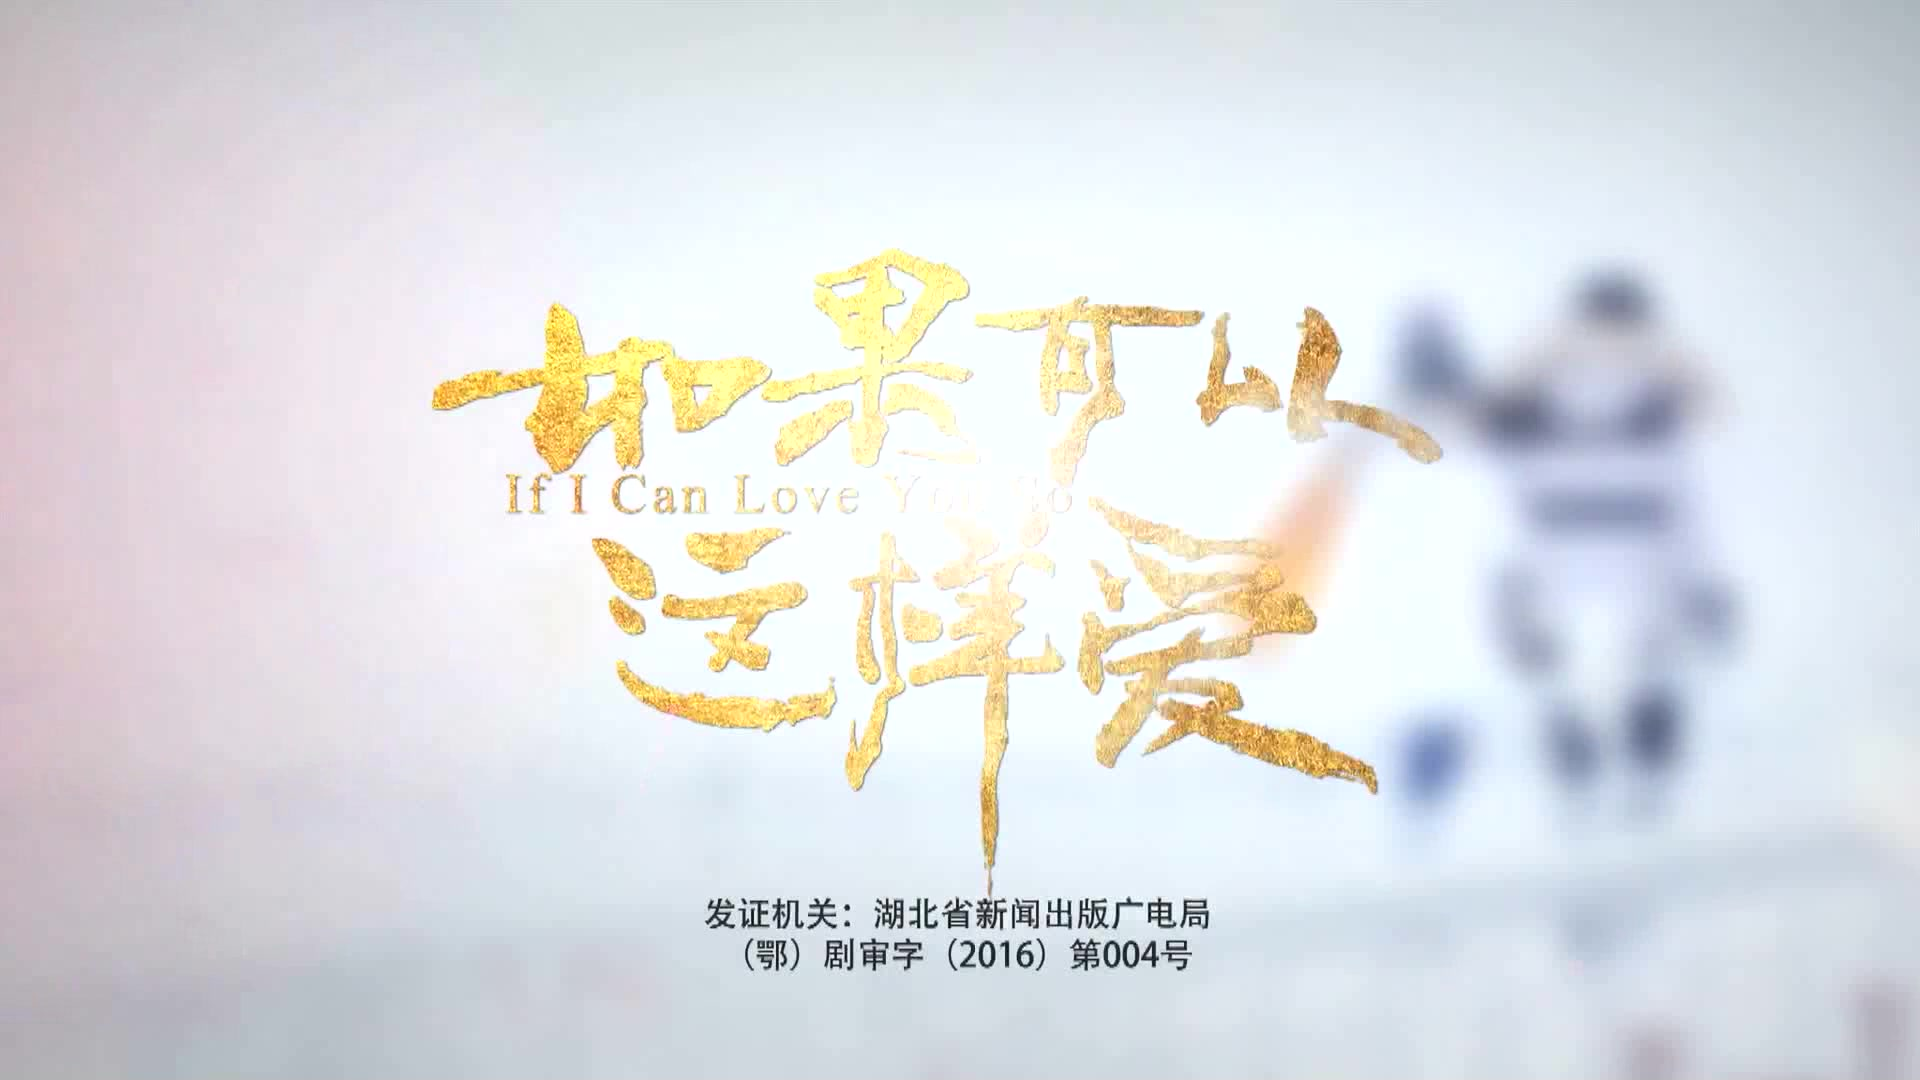 Trailer 3: If I Can Love You So